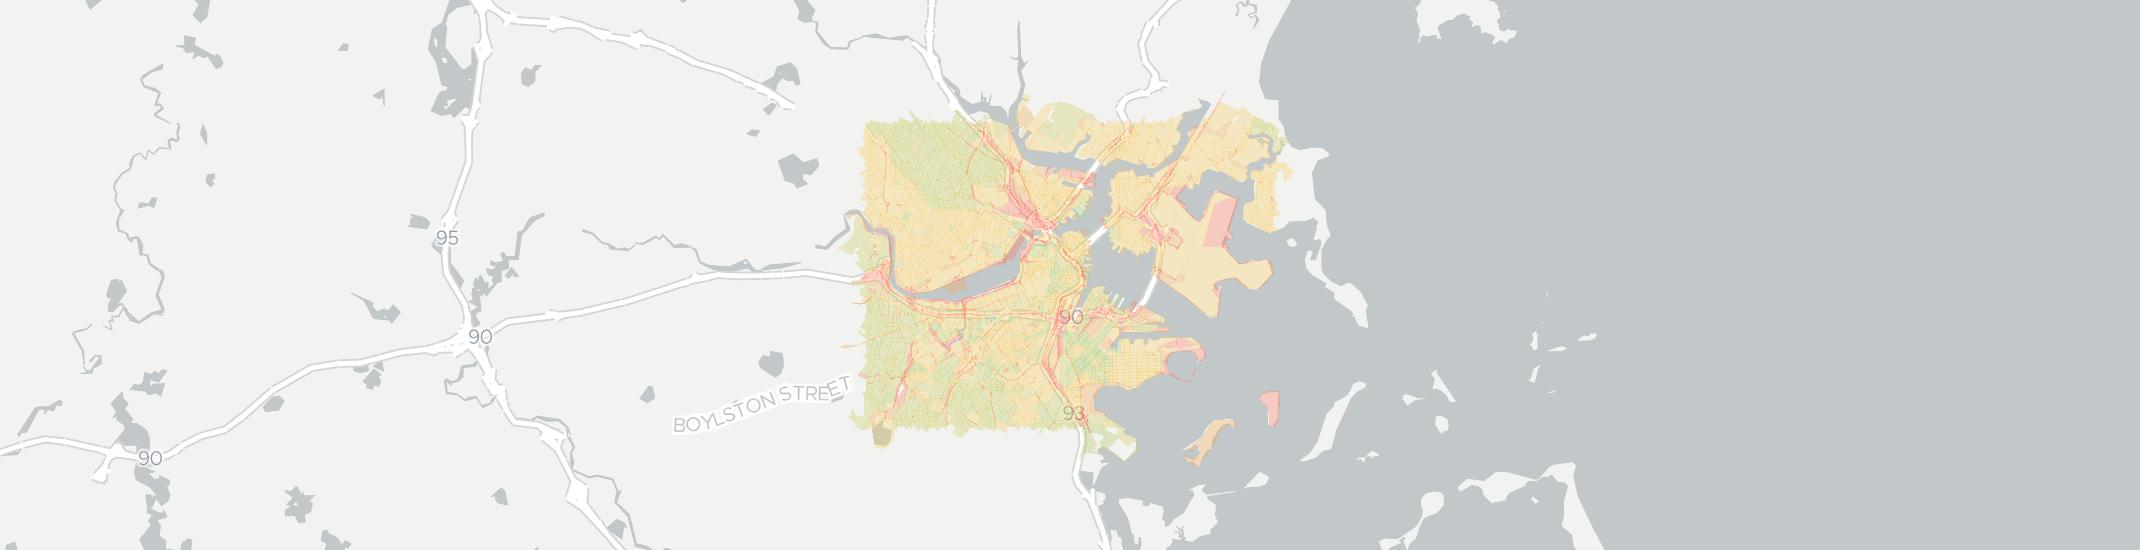 Boston Internet Competition Map. Click for interactive map.